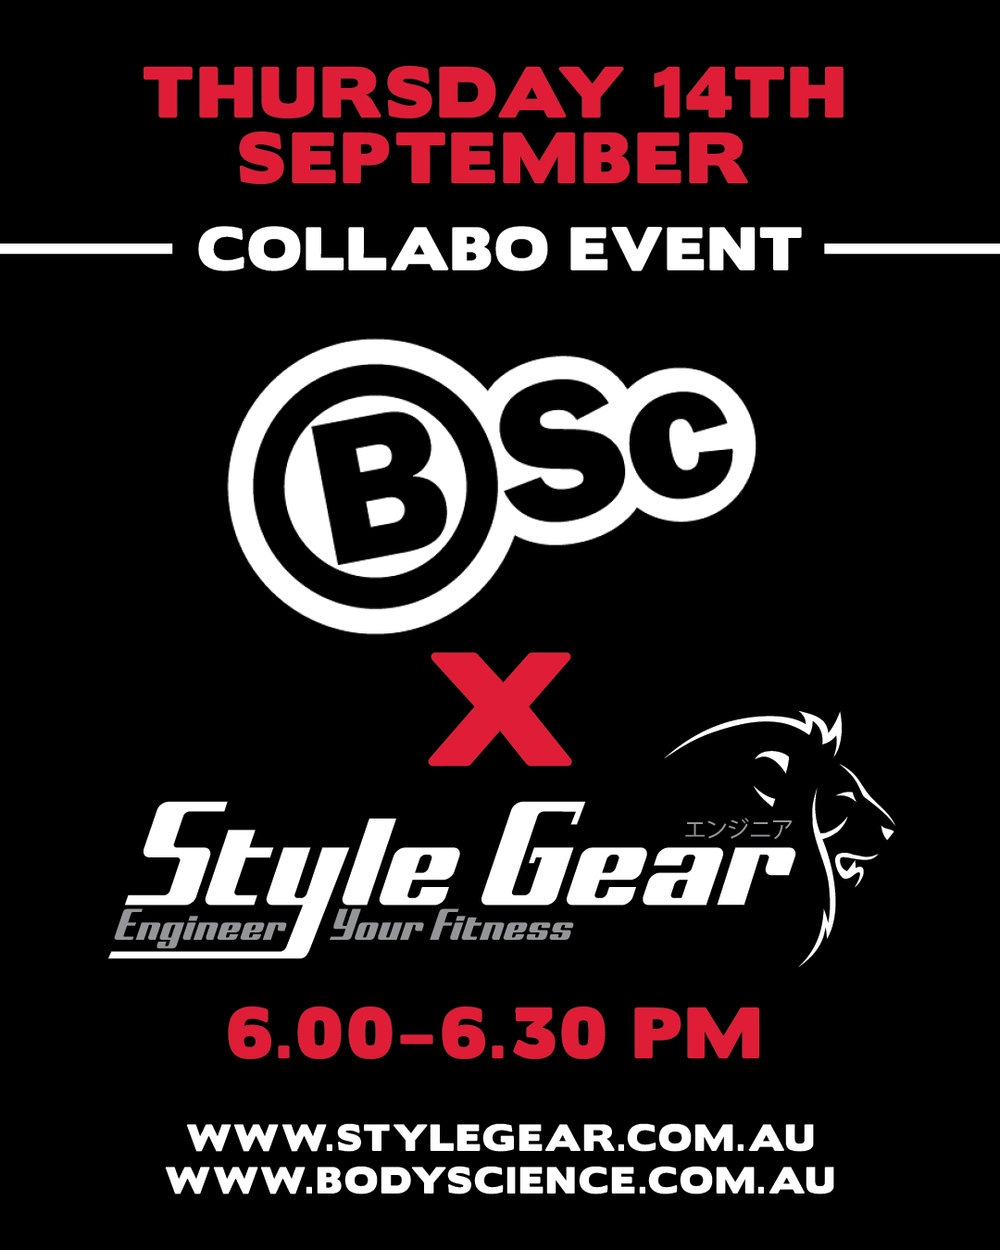 BSC Collabo Event - We had another special night at Jetts hosted by Style Gear on Thursday 14th September. We were joined by BSC with some great giveaways. Plus a free sampling hydration station! We had an awesome group training session, hosted by Mai. A Big thanks to everyone who came along and worked so hard. Plus a special thanks to BSC for helping us to put on such great collaboration events. We look forward to seeing you at the next one. Stay up-to-date on all events by following us on instagram @stylegear.com.auSpots are always limited so please contact Mai and book your spot to join us on the next event.